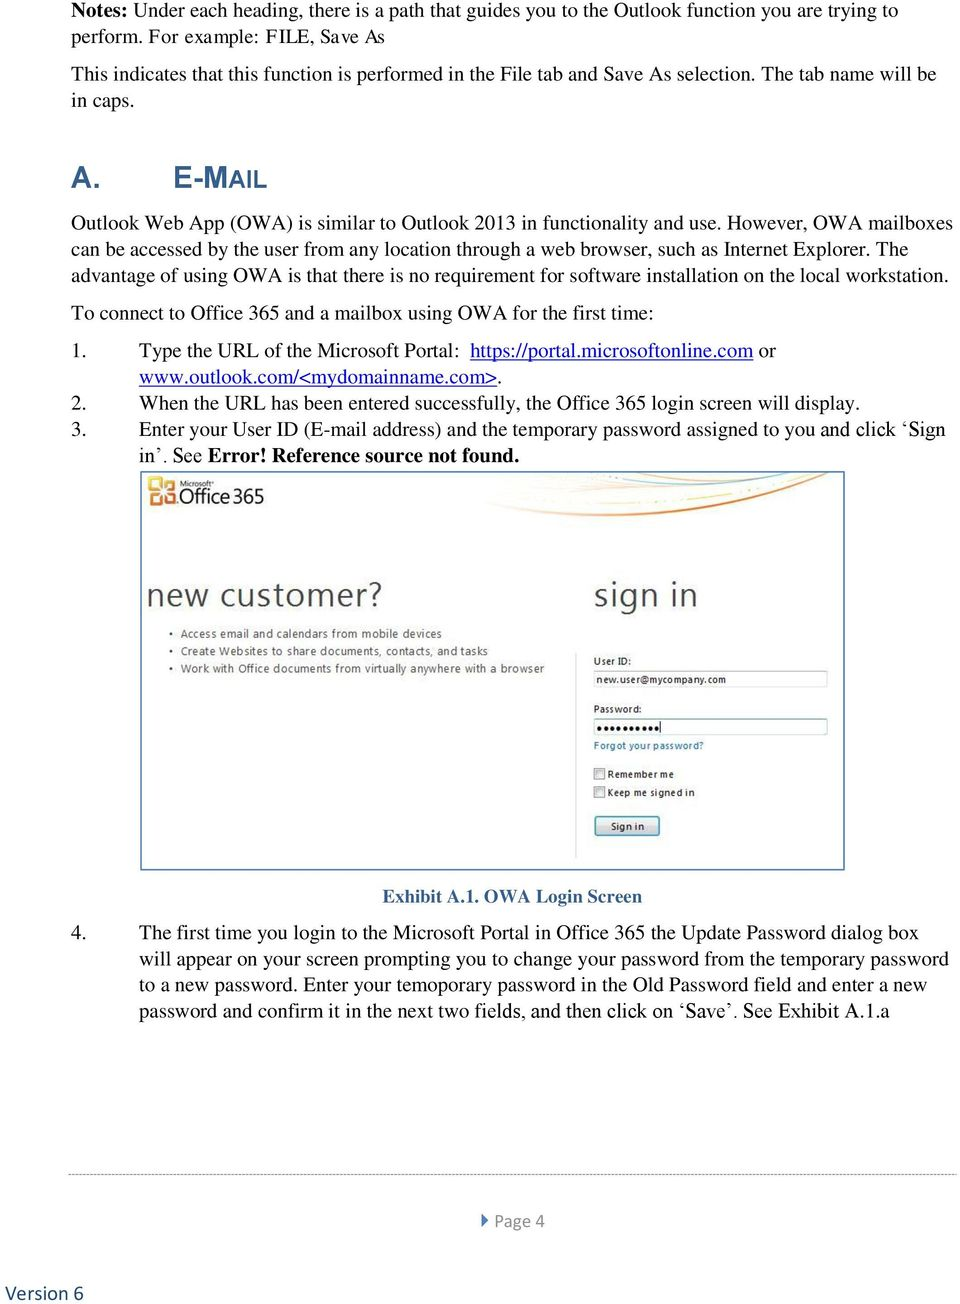 However, OWA mailboxes can be accessed by the user from any location through a web browser, such as Internet Explorer.